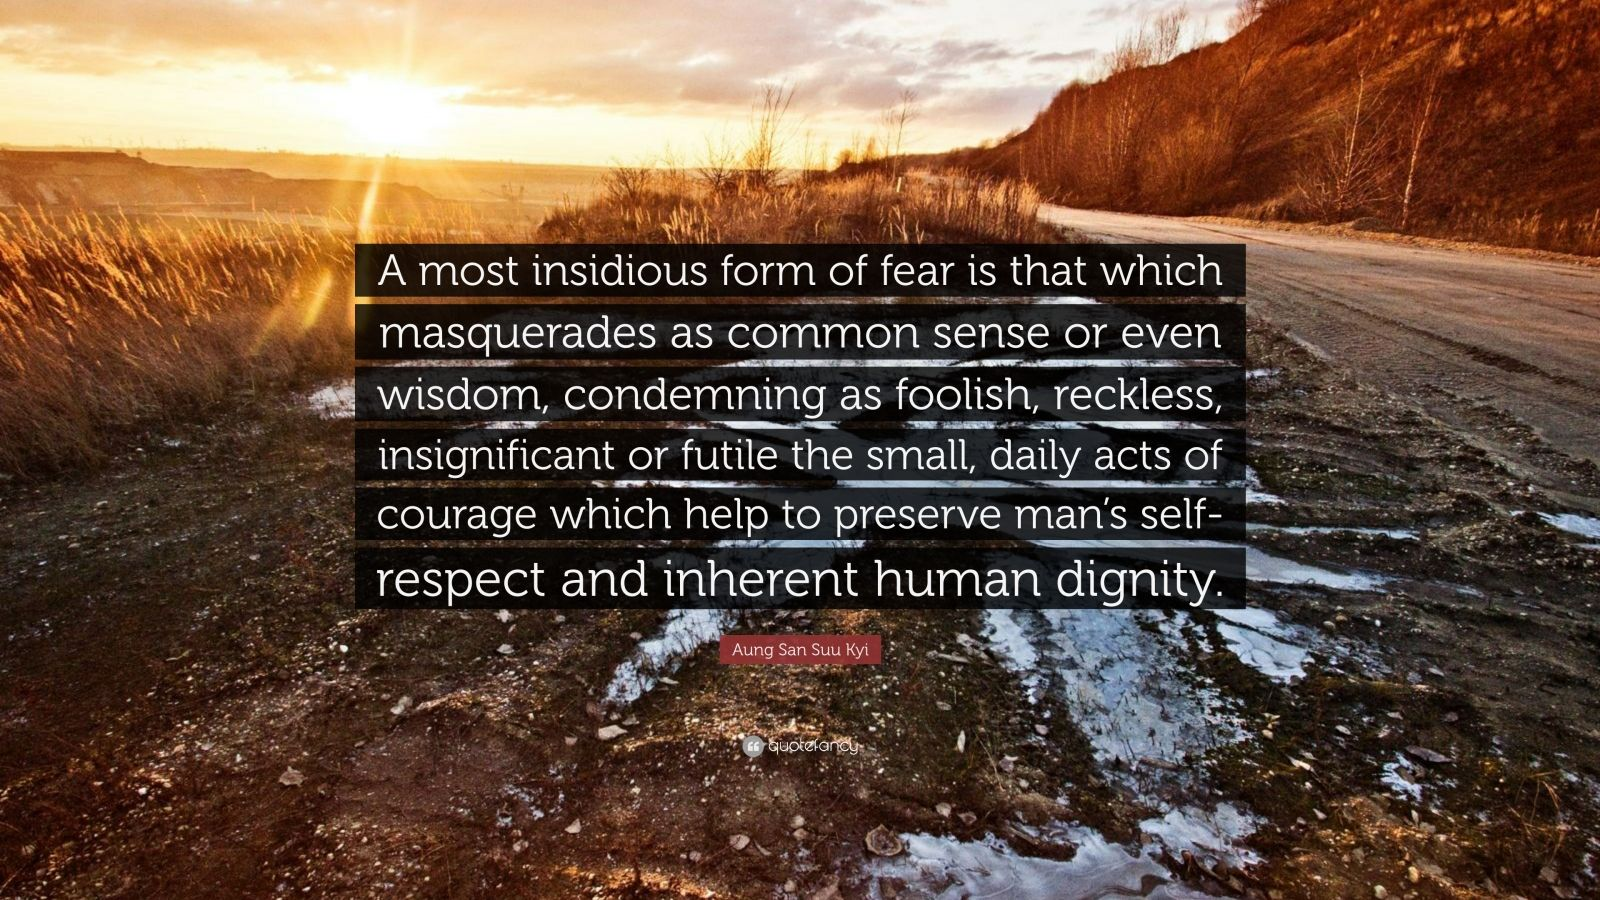 """Aung San Suu Kyi Quote: """"A most insidious form of fear is that which masquerades as common sense or even wisdom, condemning as foolish, reckless, insignificant or futile the small, daily acts of courage which help to preserve man's self-respect and inherent human dignity."""""""